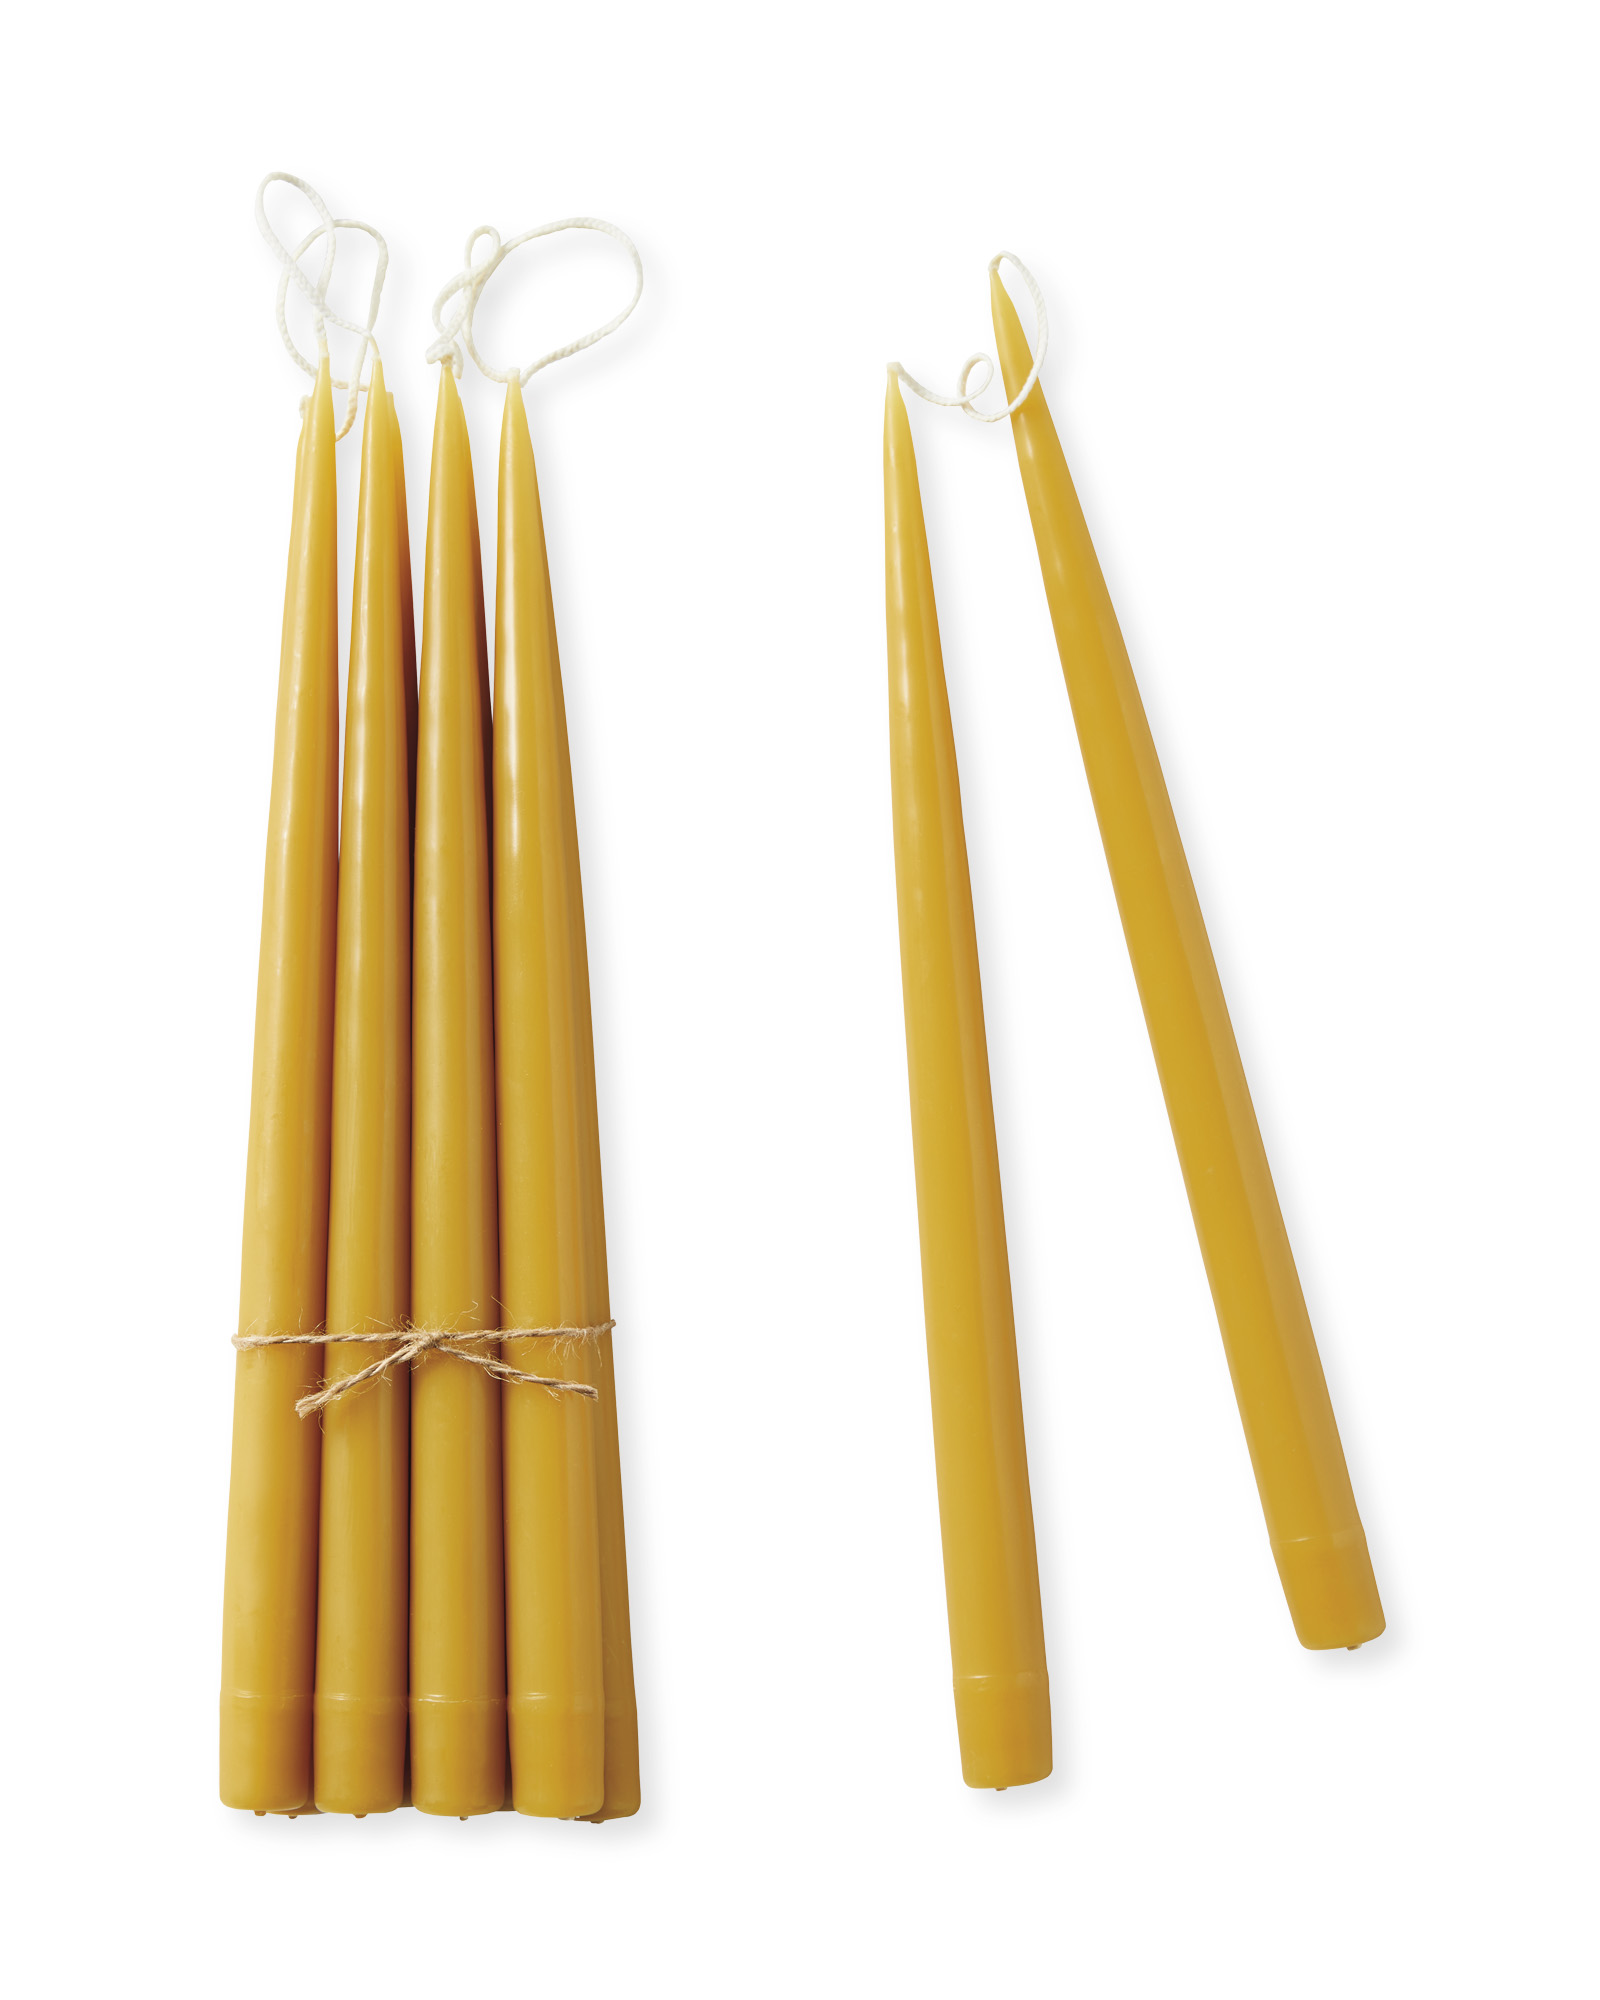 Tapered Candles (Set of 10), Honey